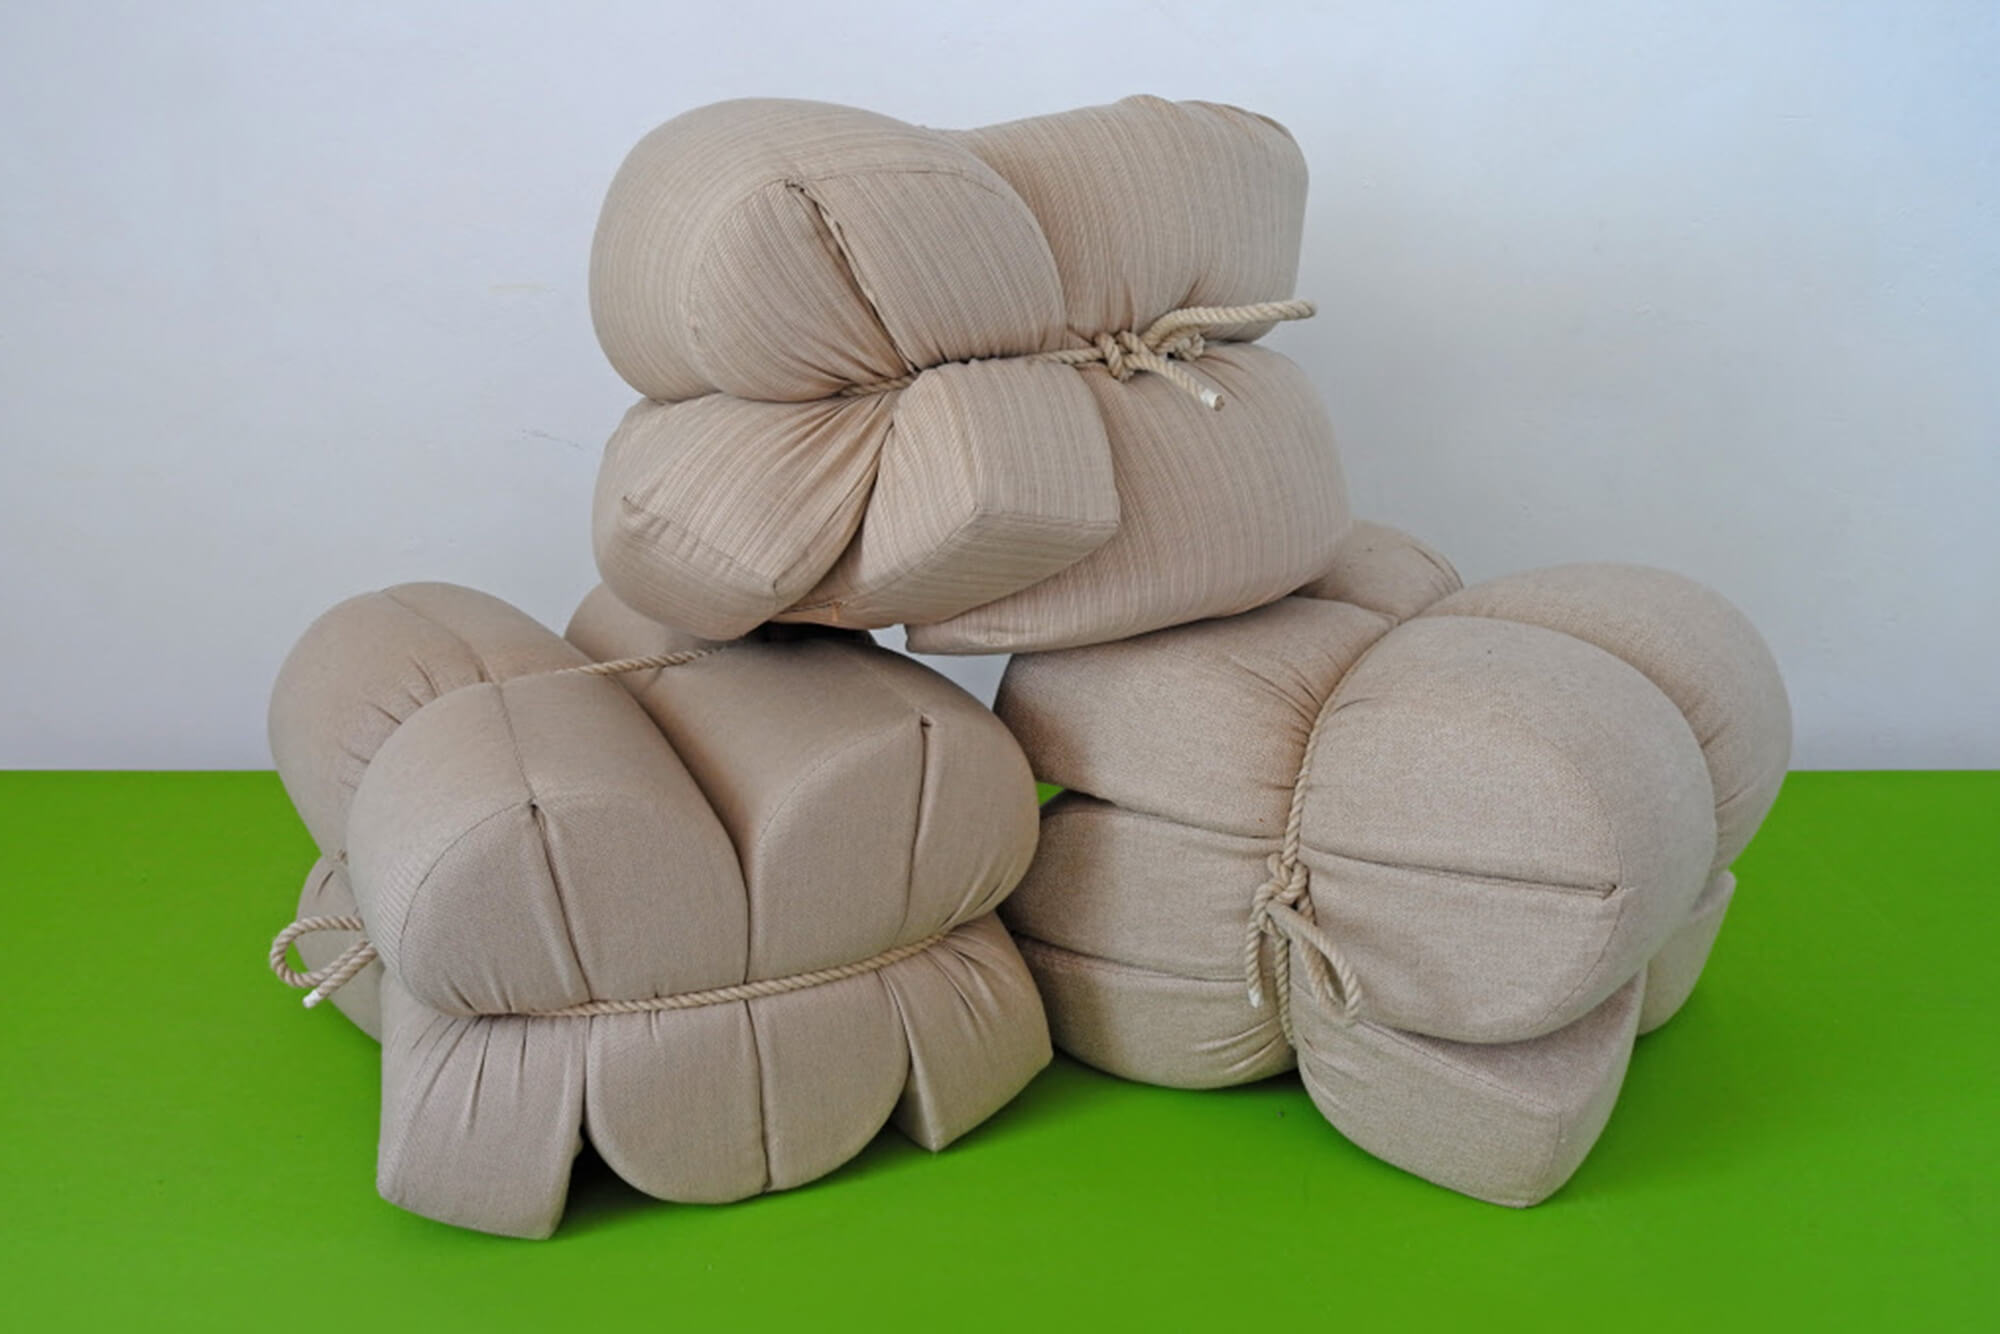 Cushions made using beige Sunbrella fabrics are folded and tied with rope